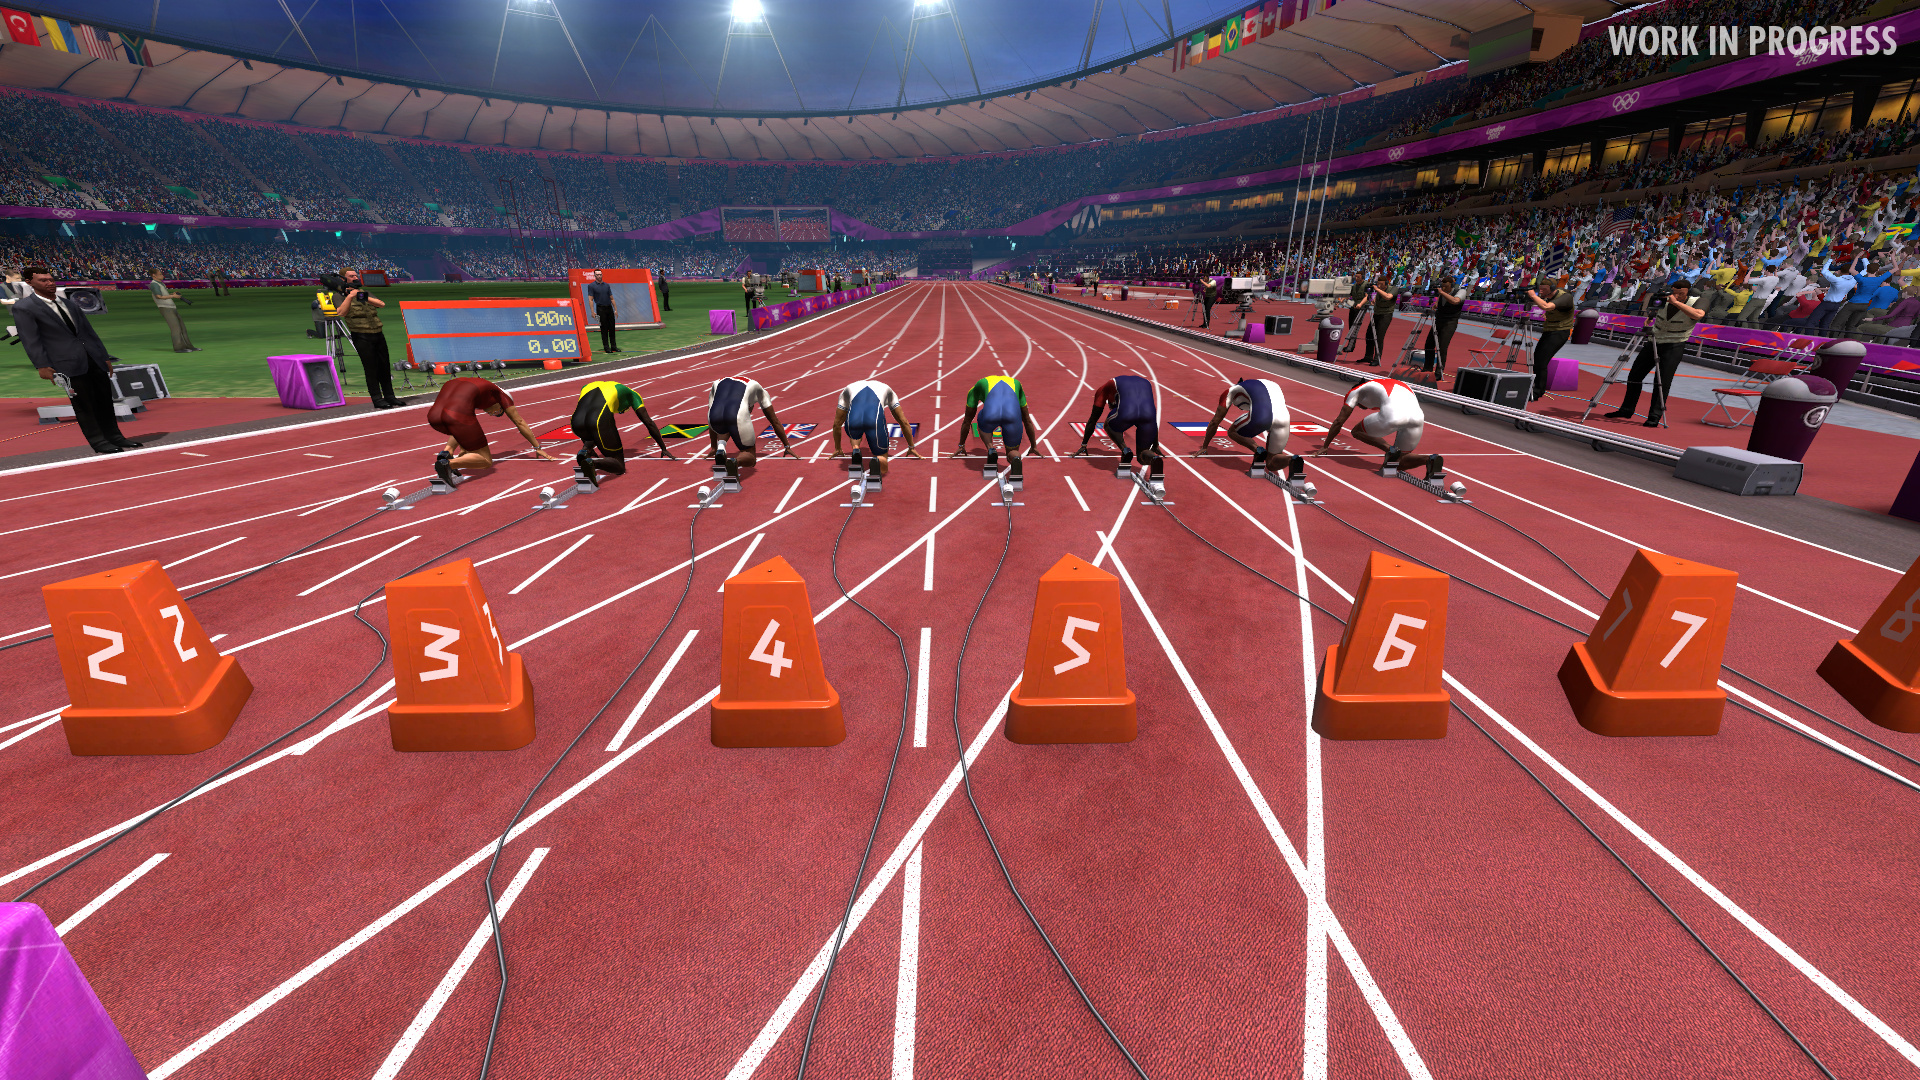 London 2012 Official Game (APK) - Free Download